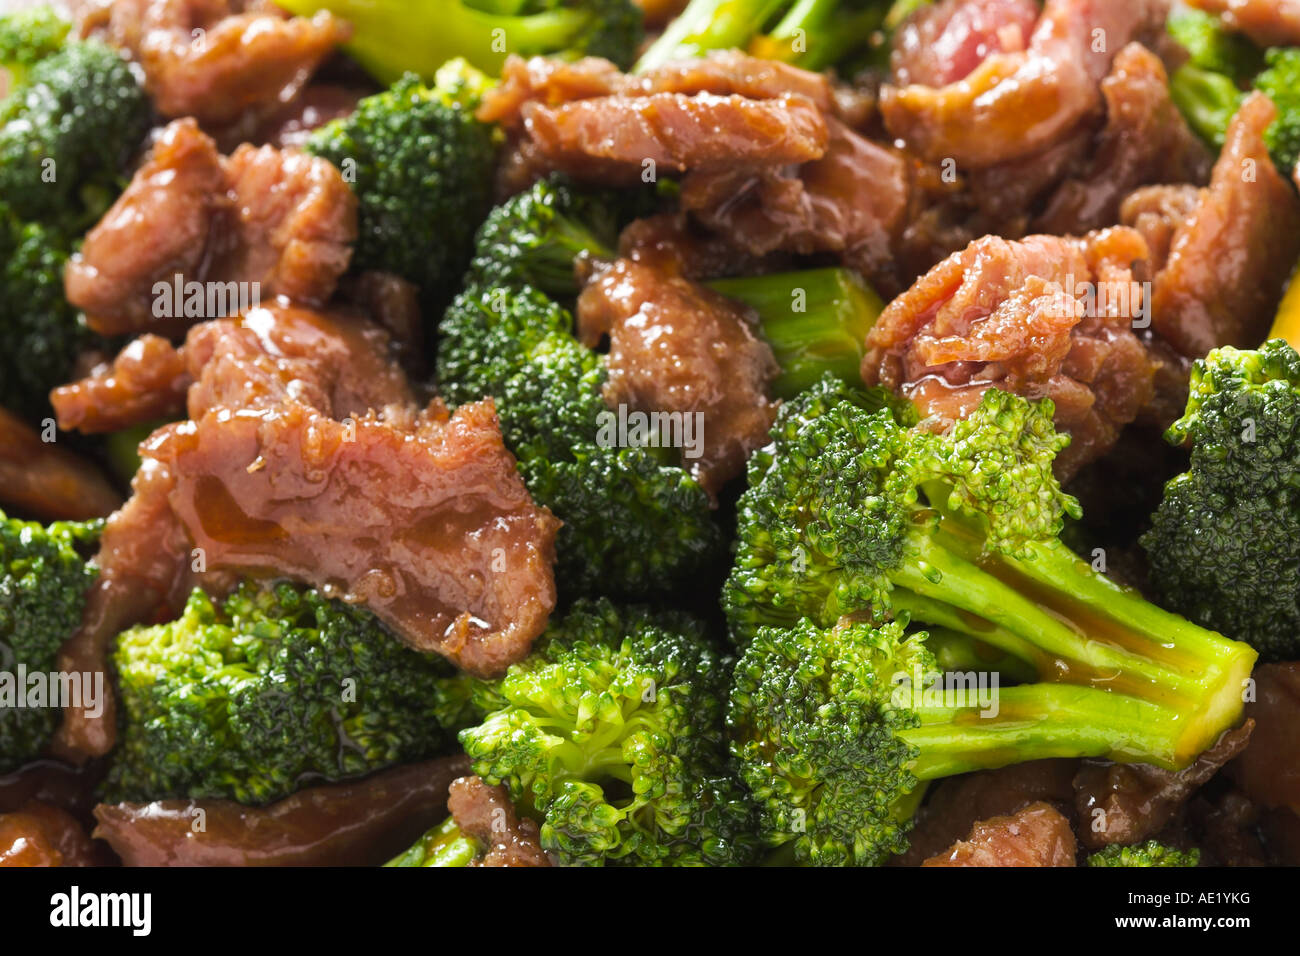 Mongolian beef brocolli brocoli broccoli oyster sauce chinese food with seeds seed dish white plate delicious mouth - Stock Image